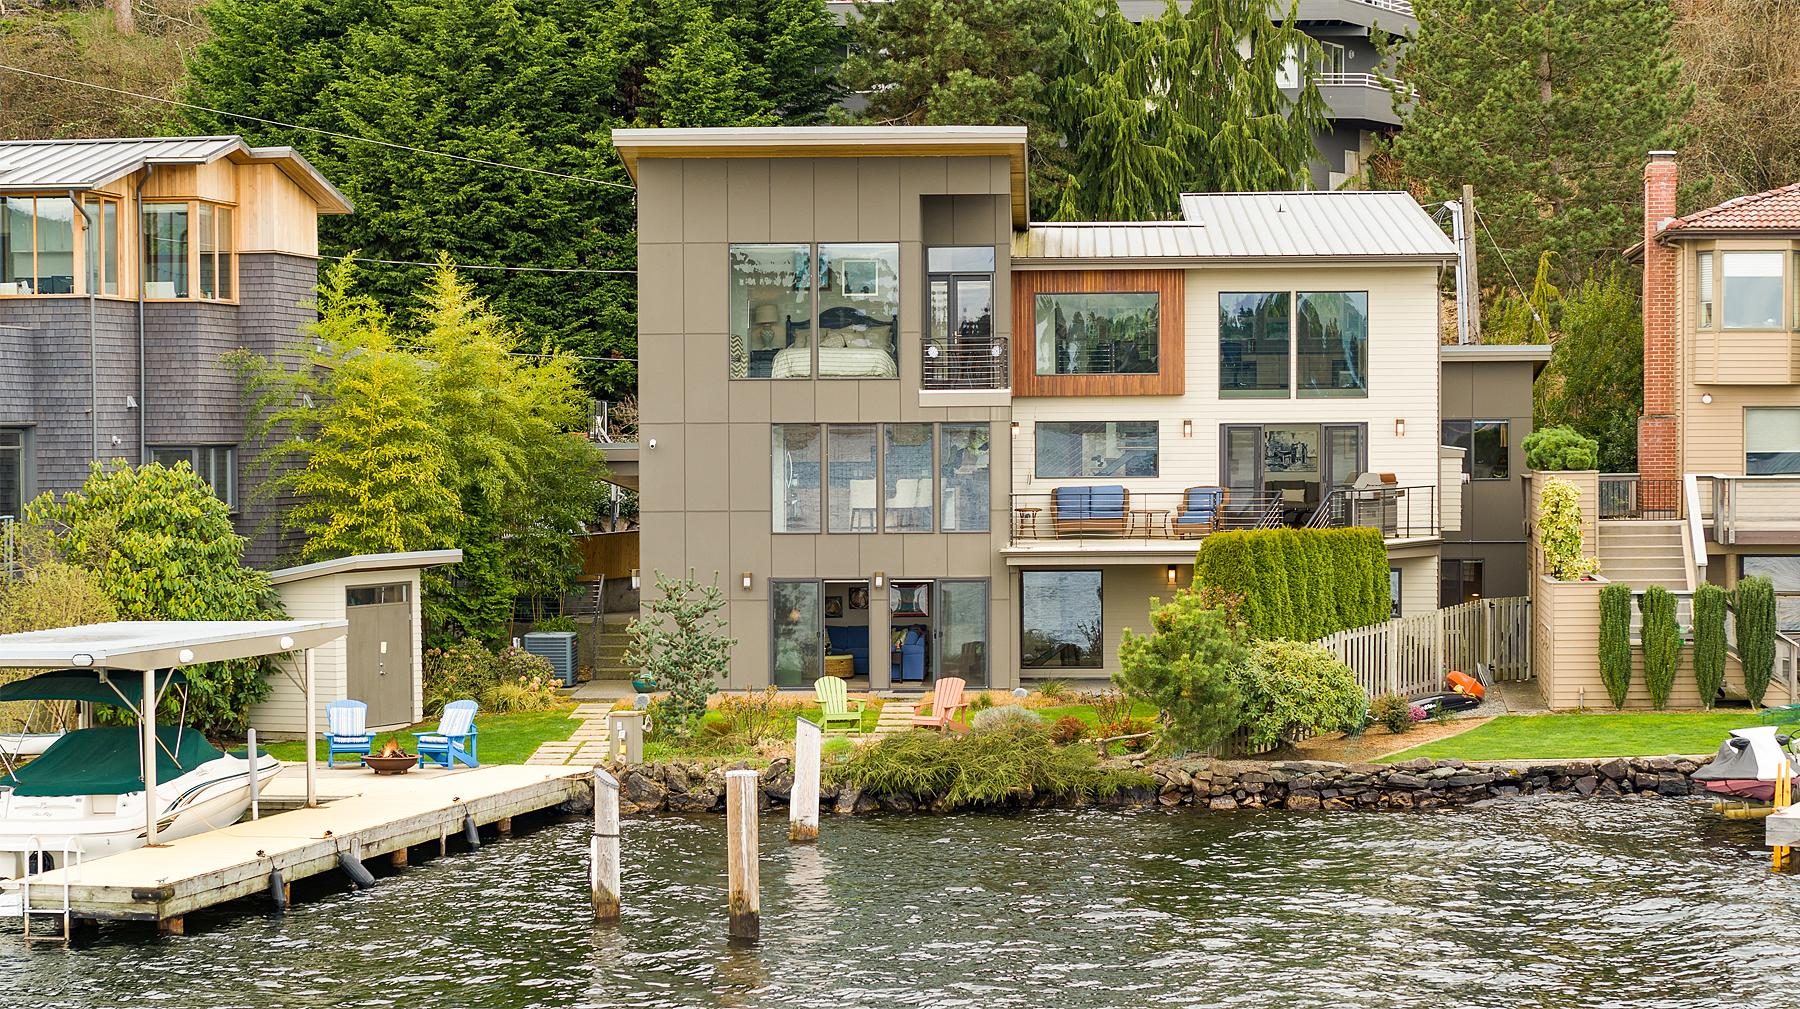 "SWOON! This gorgeous home sits on the shores of Lake Washington and boasts views of both the north end of the lake as well as the Cascade Mountains. The home has 63 feet of no bank water front, open floor plans, walls of windows that maximize the views, chef's kitchen with an island, floating steel staircase, and so much more!{&nbsp;}<a  href=""https://www.windermere.com/listing/WA/Lake-Forest-Park/14730-Edgewater-Lane-NE-98155/93629600"" target=""_blank"" title=""https://www.windermere.com/listing/WA/Lake-Forest-Park/14730-Edgewater-Lane-NE-98155/93629600"">Listed by Windermere for $3M</a>, there are 4 bedrooms, 3 baths and is 3,440 square feet. When can we move in? (Image courtesy of Windermere)"